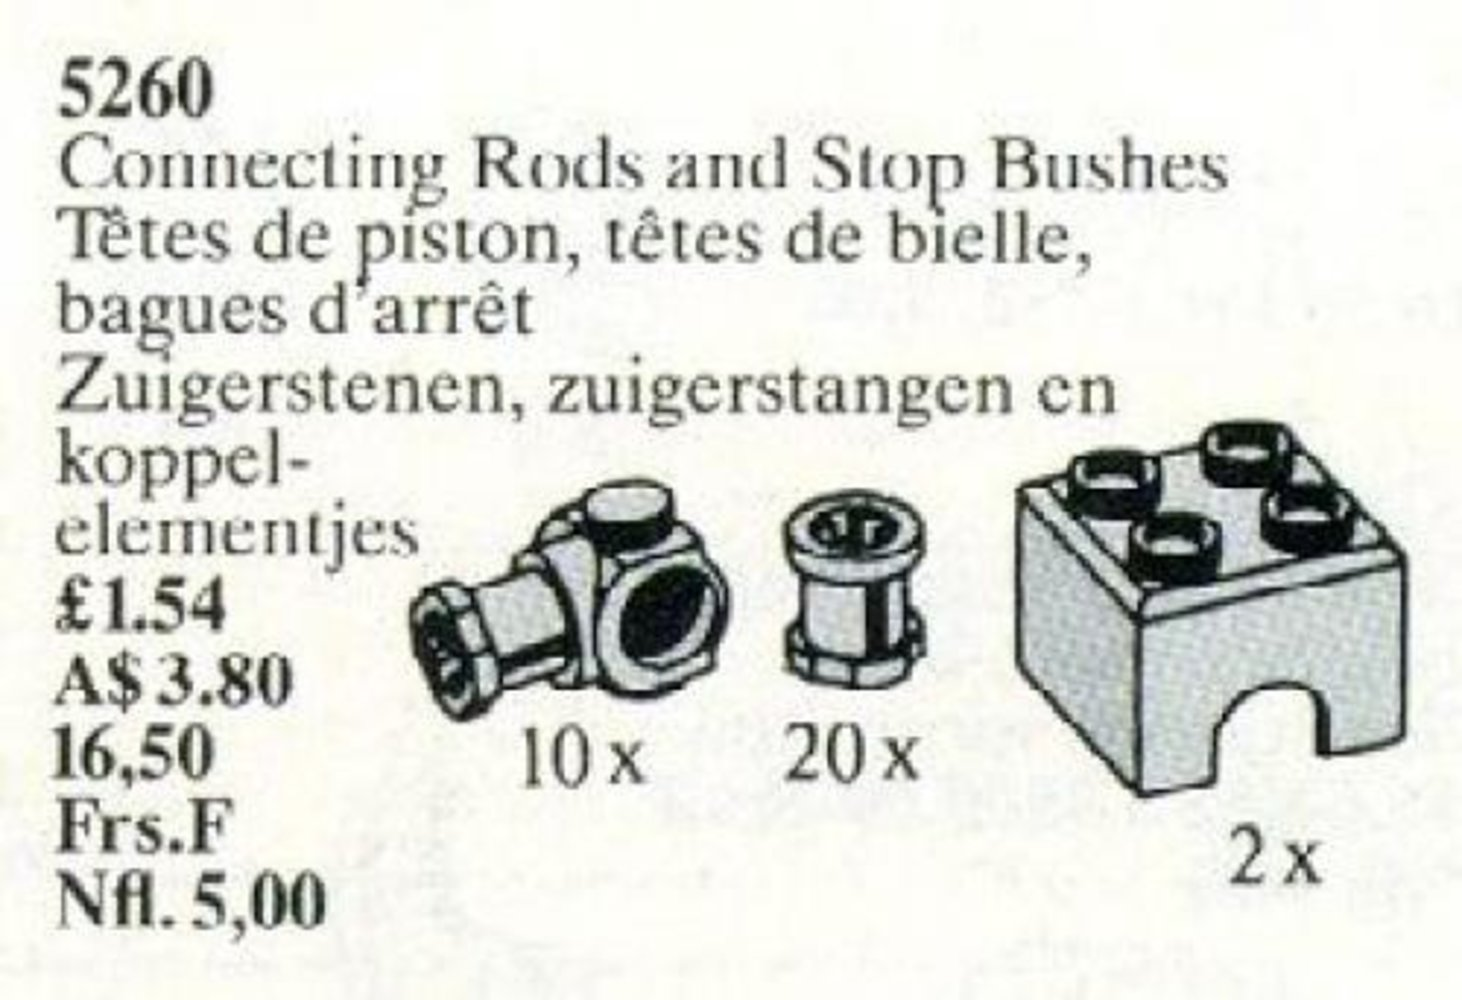 Connecting Rods and Stop Bushes